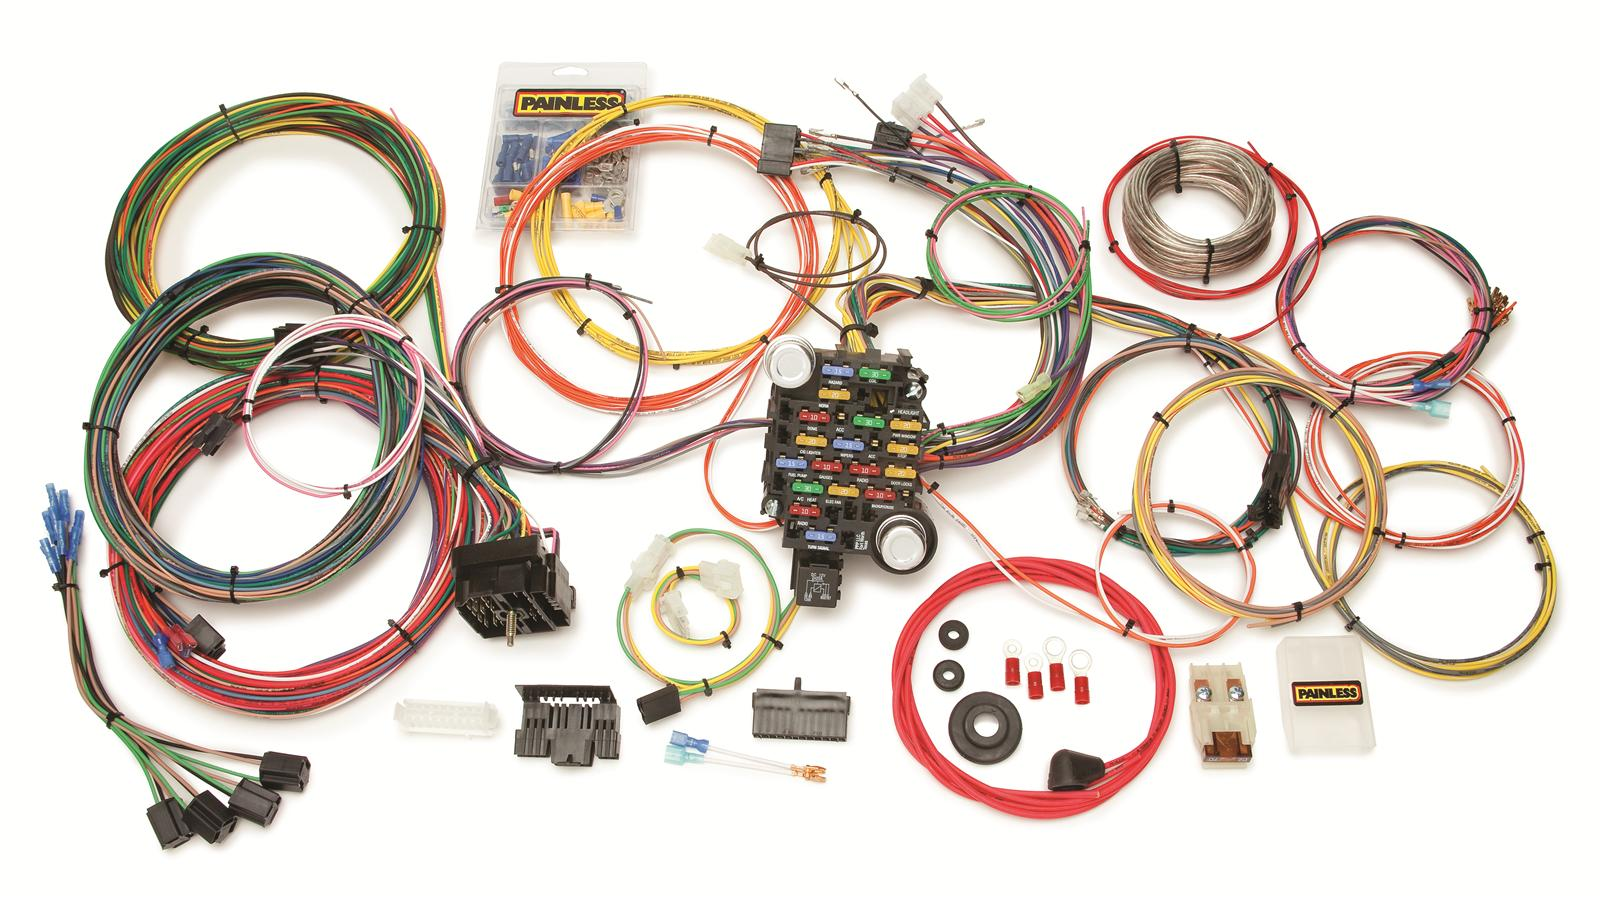 Painless Performance Gmc Chevy Truck Harnesses 10205 Free Shipping Wiring On Orders Over 49 At Summit Racing